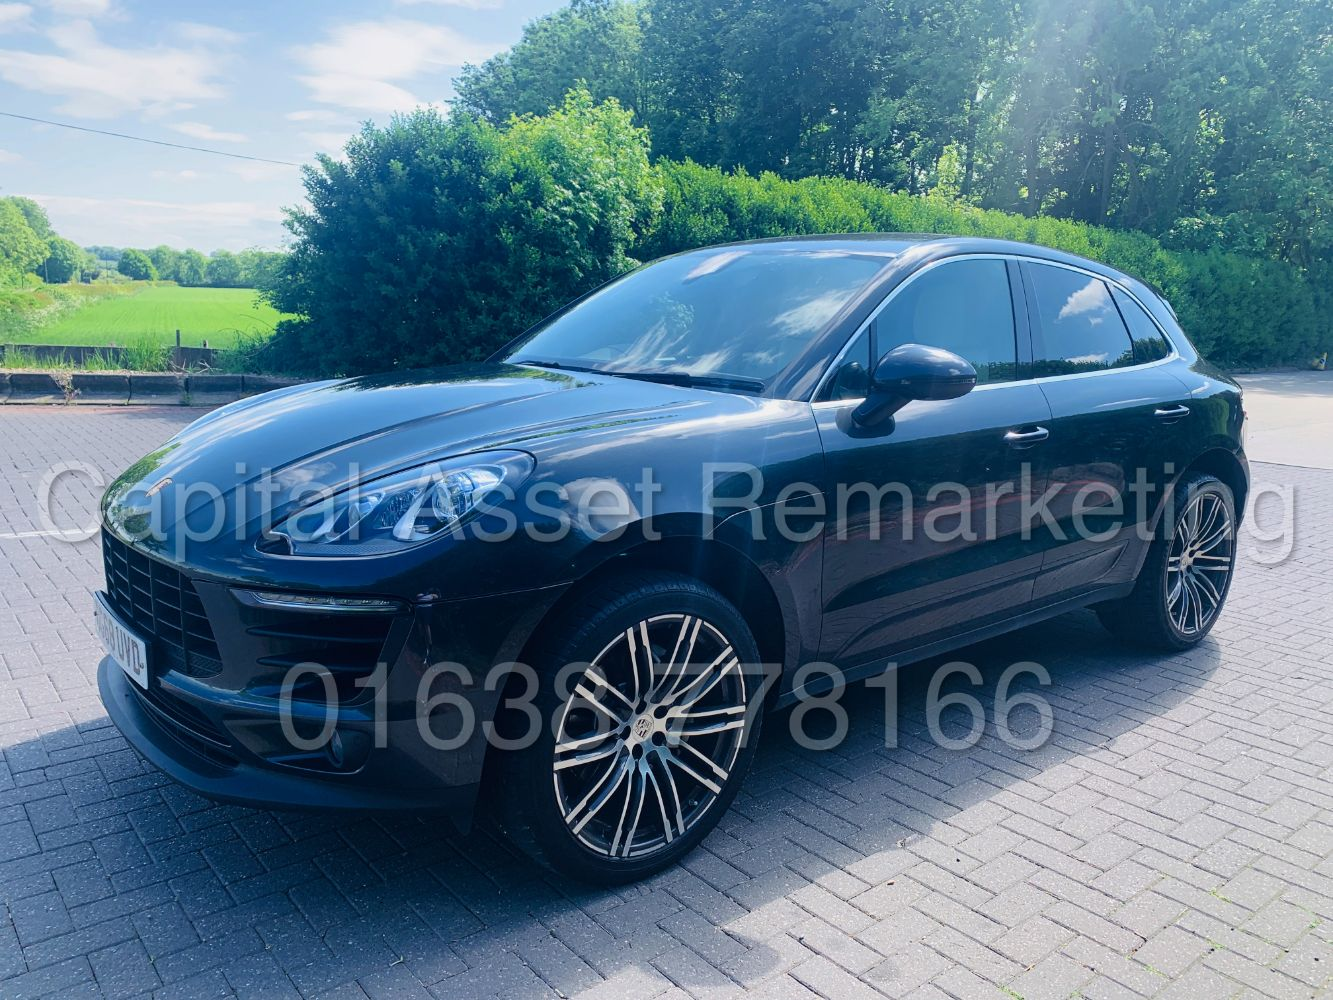 2019 Porsche Macan S *3.0 Diesel* - 2019 Audi A4 *Black Edition* - 2019 Ford Transit Custom + Many More: Cars, Commercials & 4x4's *FREE LOGIN*